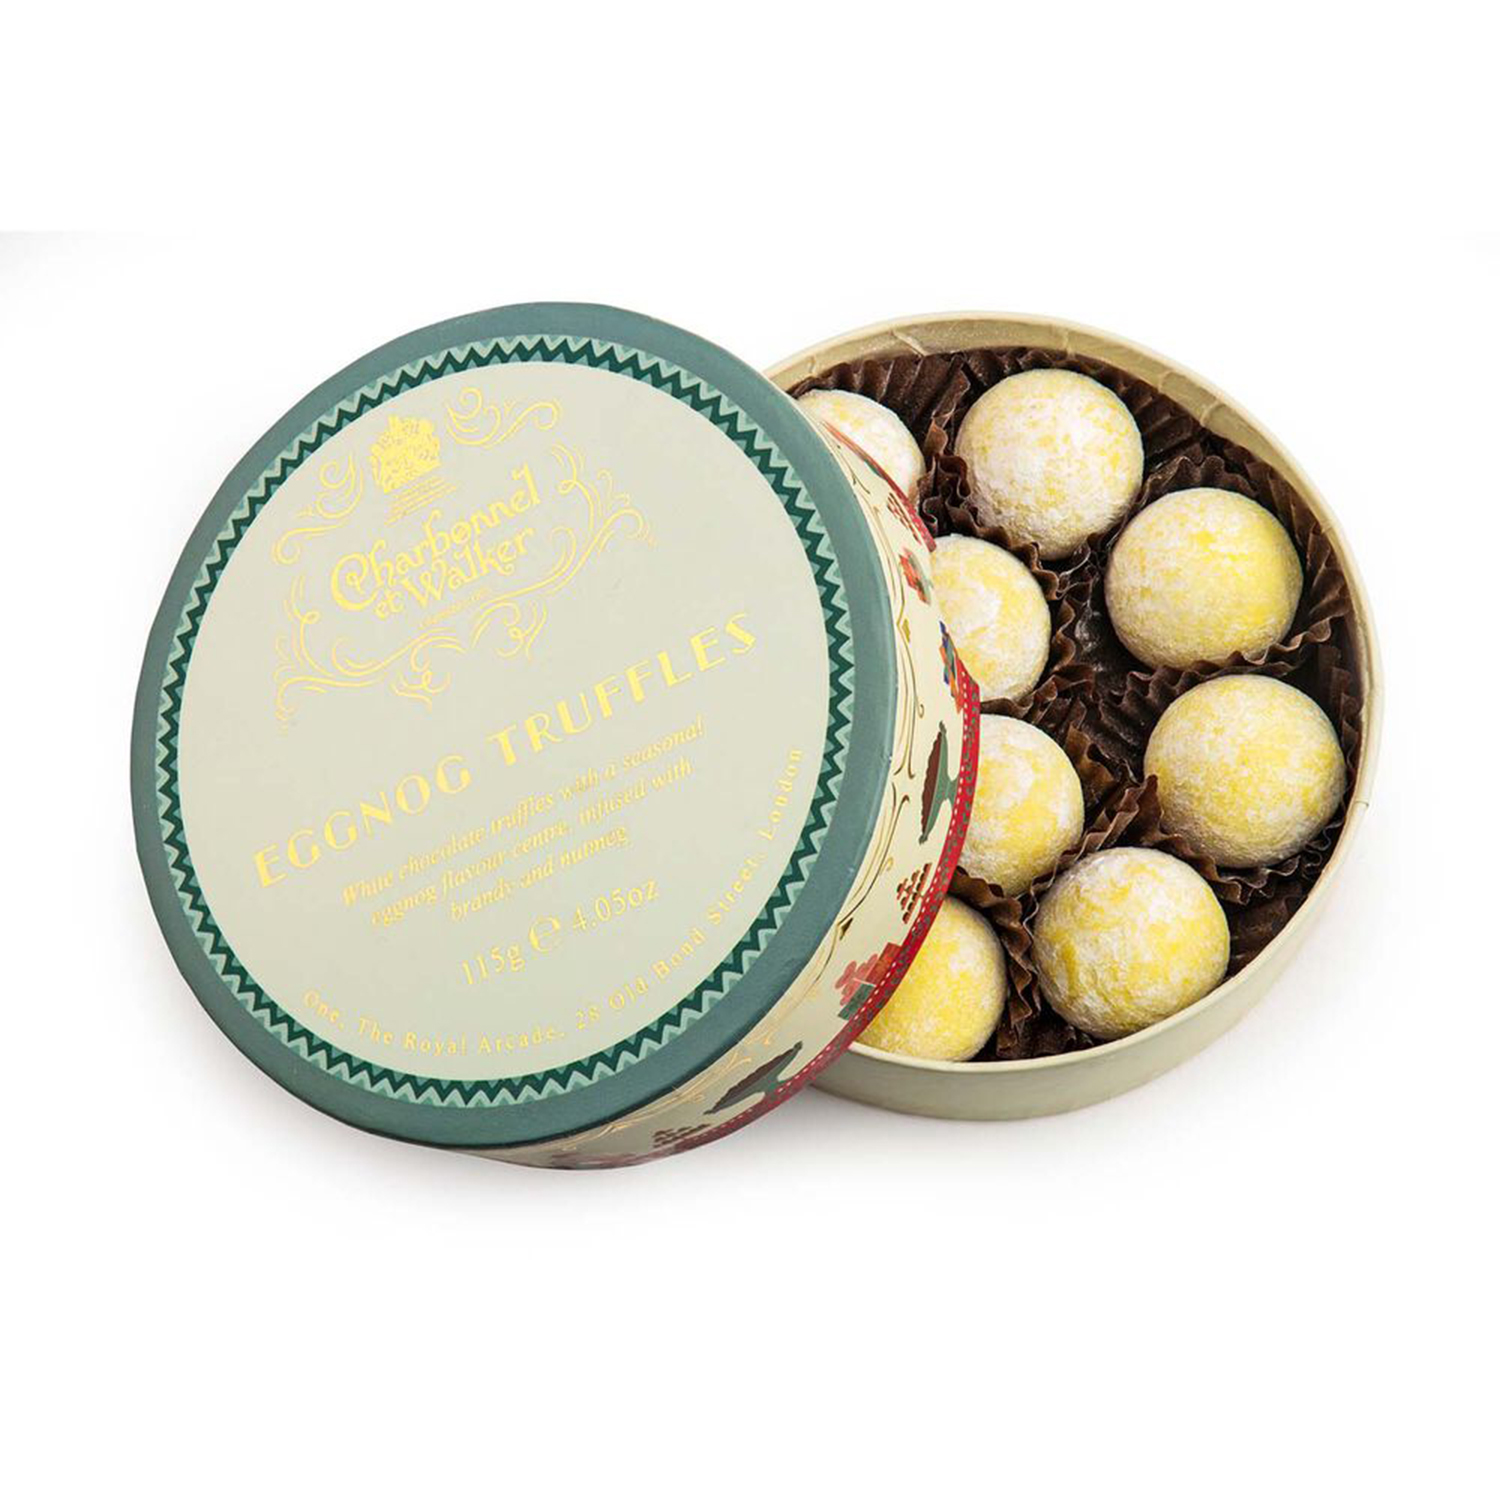 CHARBONNEL ET WALKER MILK CHOCOLATE AND TRUFFLE SET